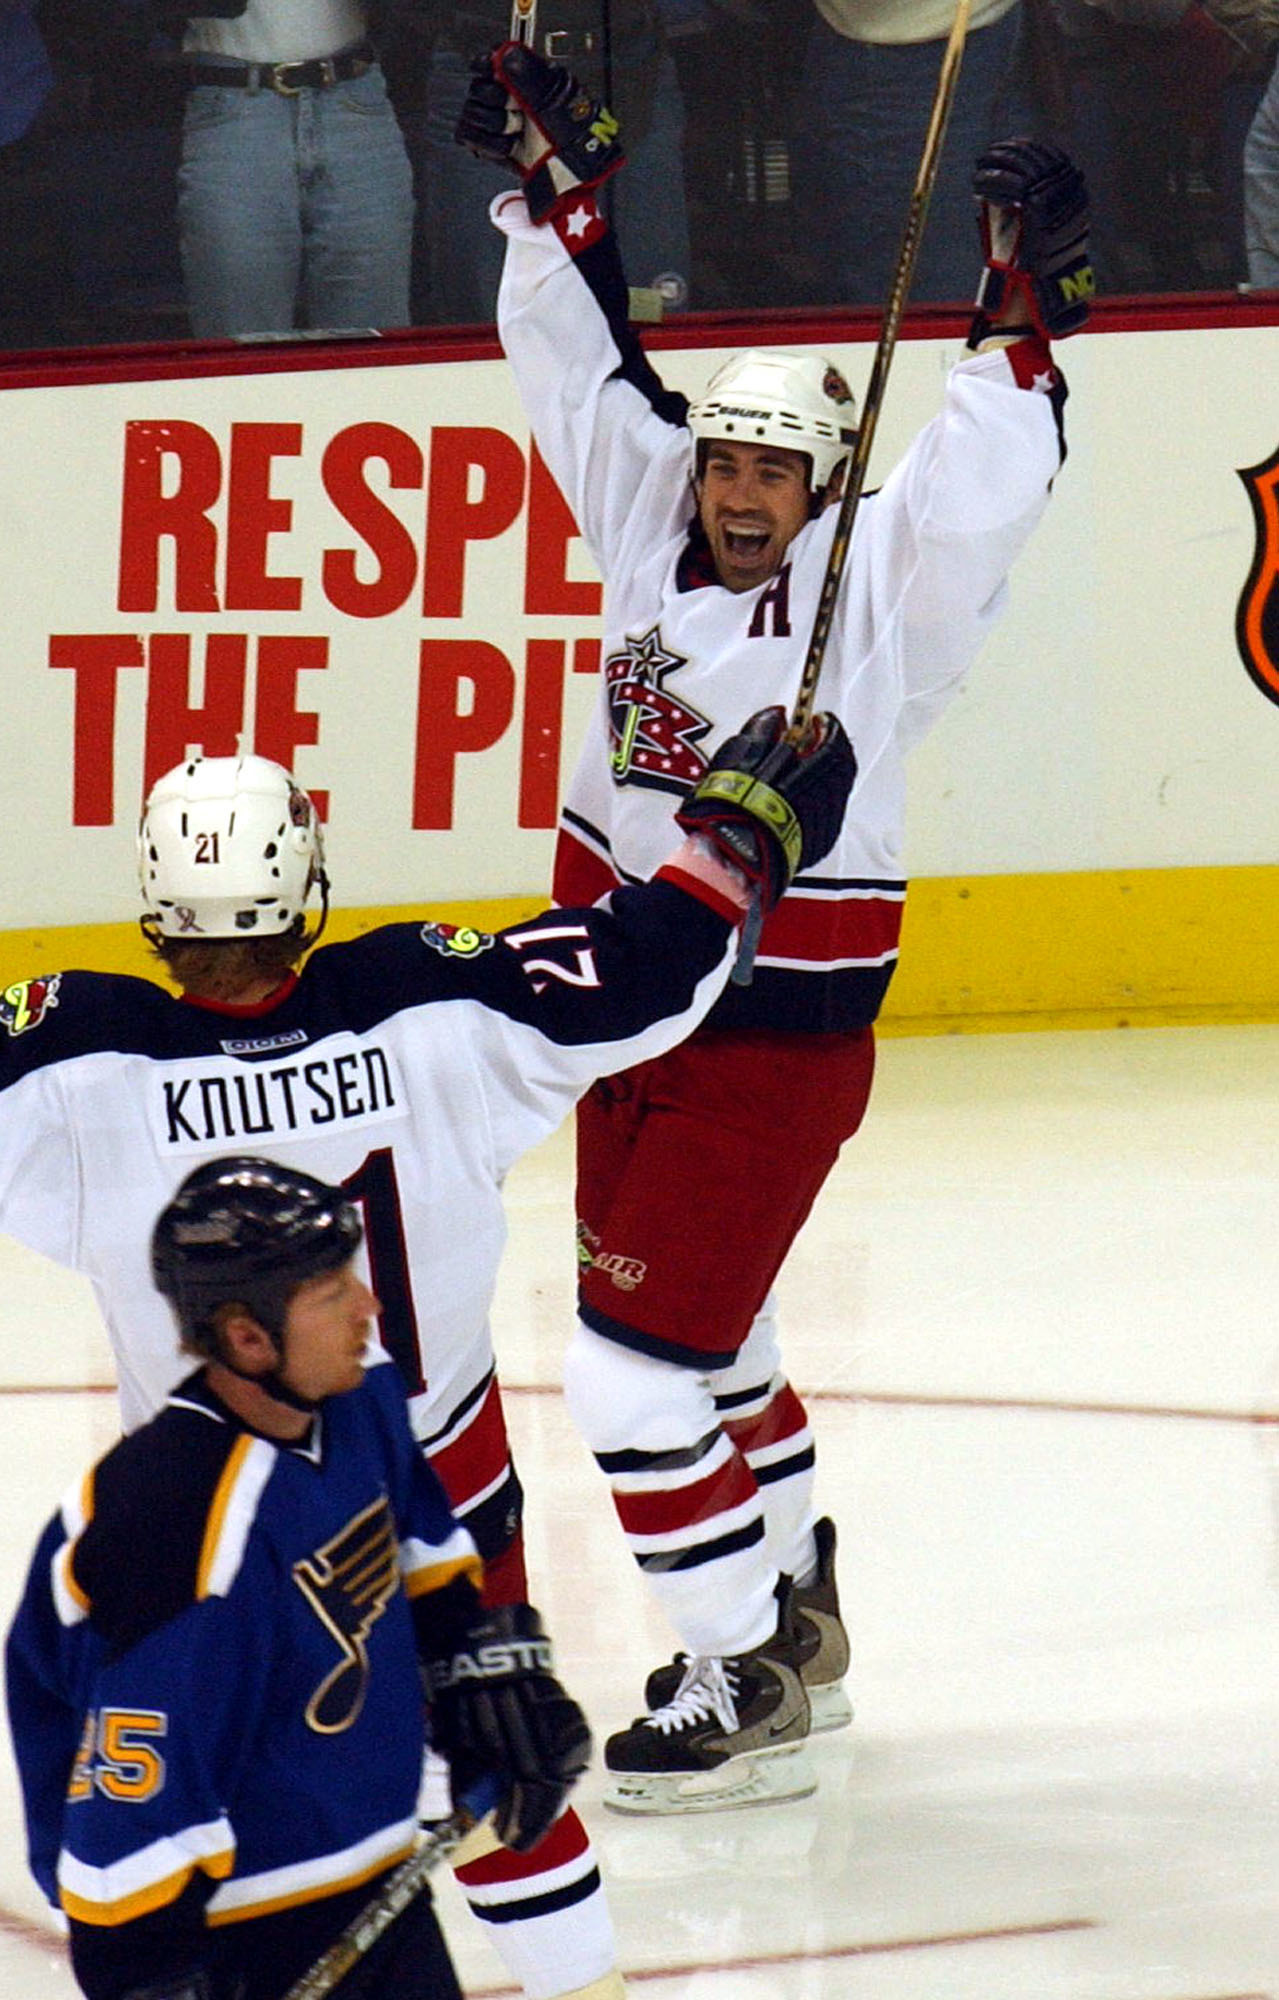 FILE - In this Oct. 4, 2001, file photo, Columbus Blue Jackets' Geoff Sanderson celebrates with teammate Espen Knutsen, center, after scoring a goal against the St. Louis Blues in an NHL hockey game in Columbus, Ohio. Blues' Mike Keane skates by at lower